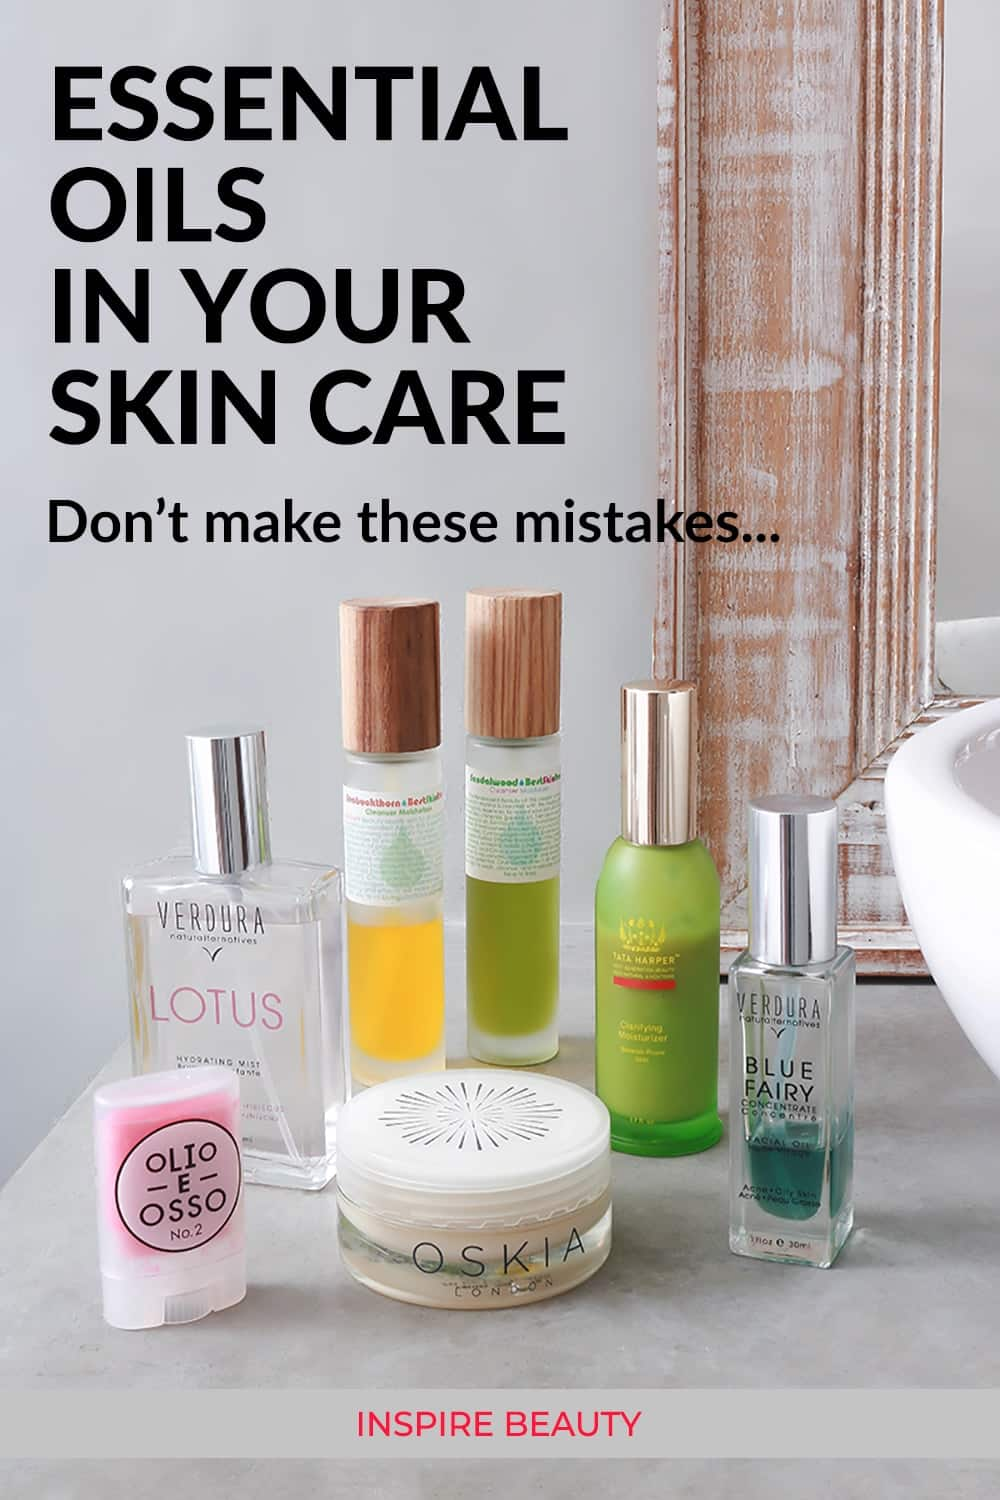 How to safely use skincare products that contain essential oils so you get the benefits and not skin sensitivity or a bad reaction.